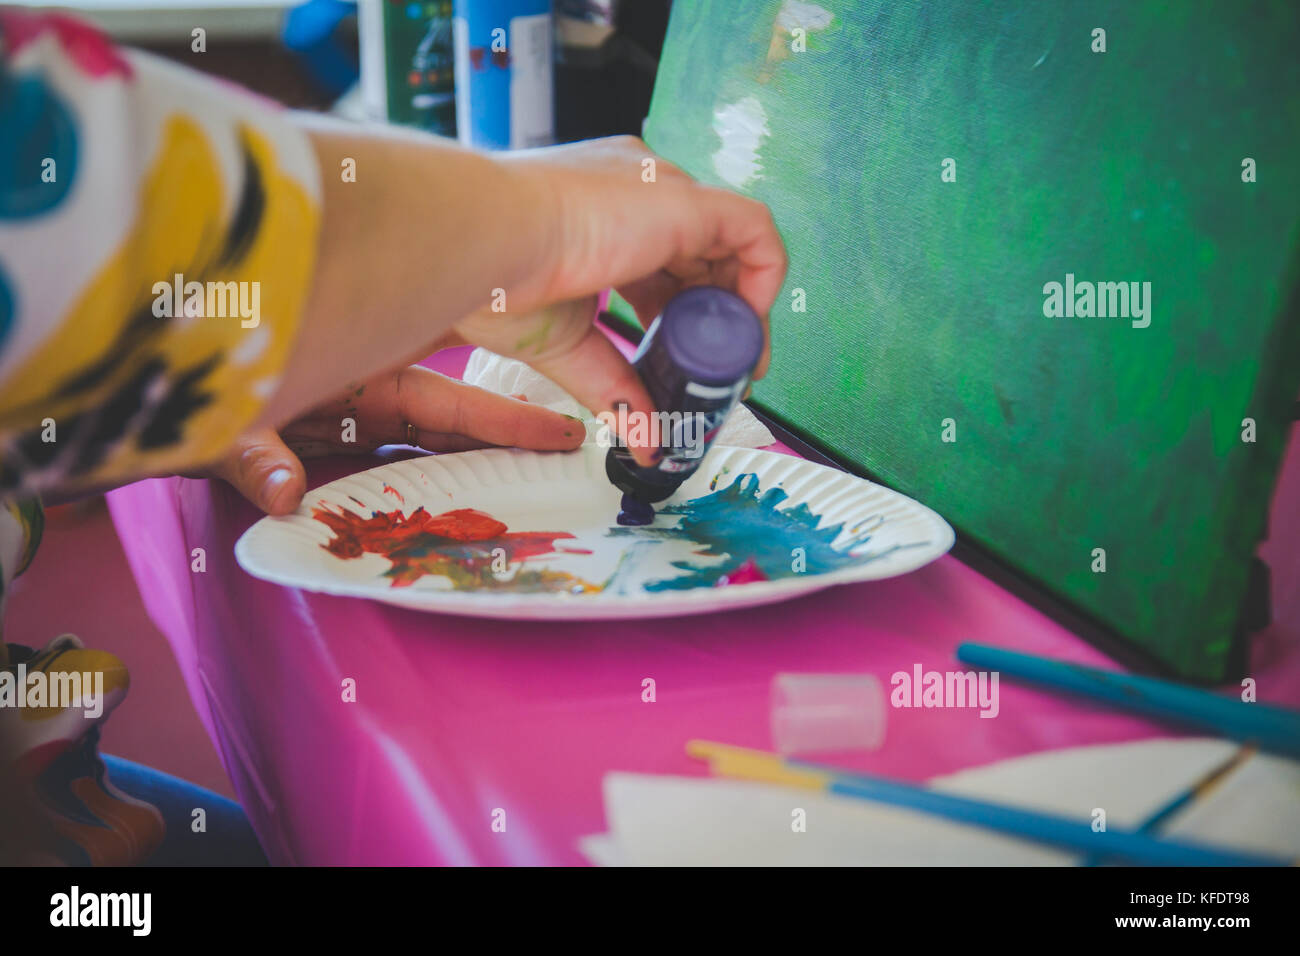 Artist holding paint brush painting canvas - Stock Image